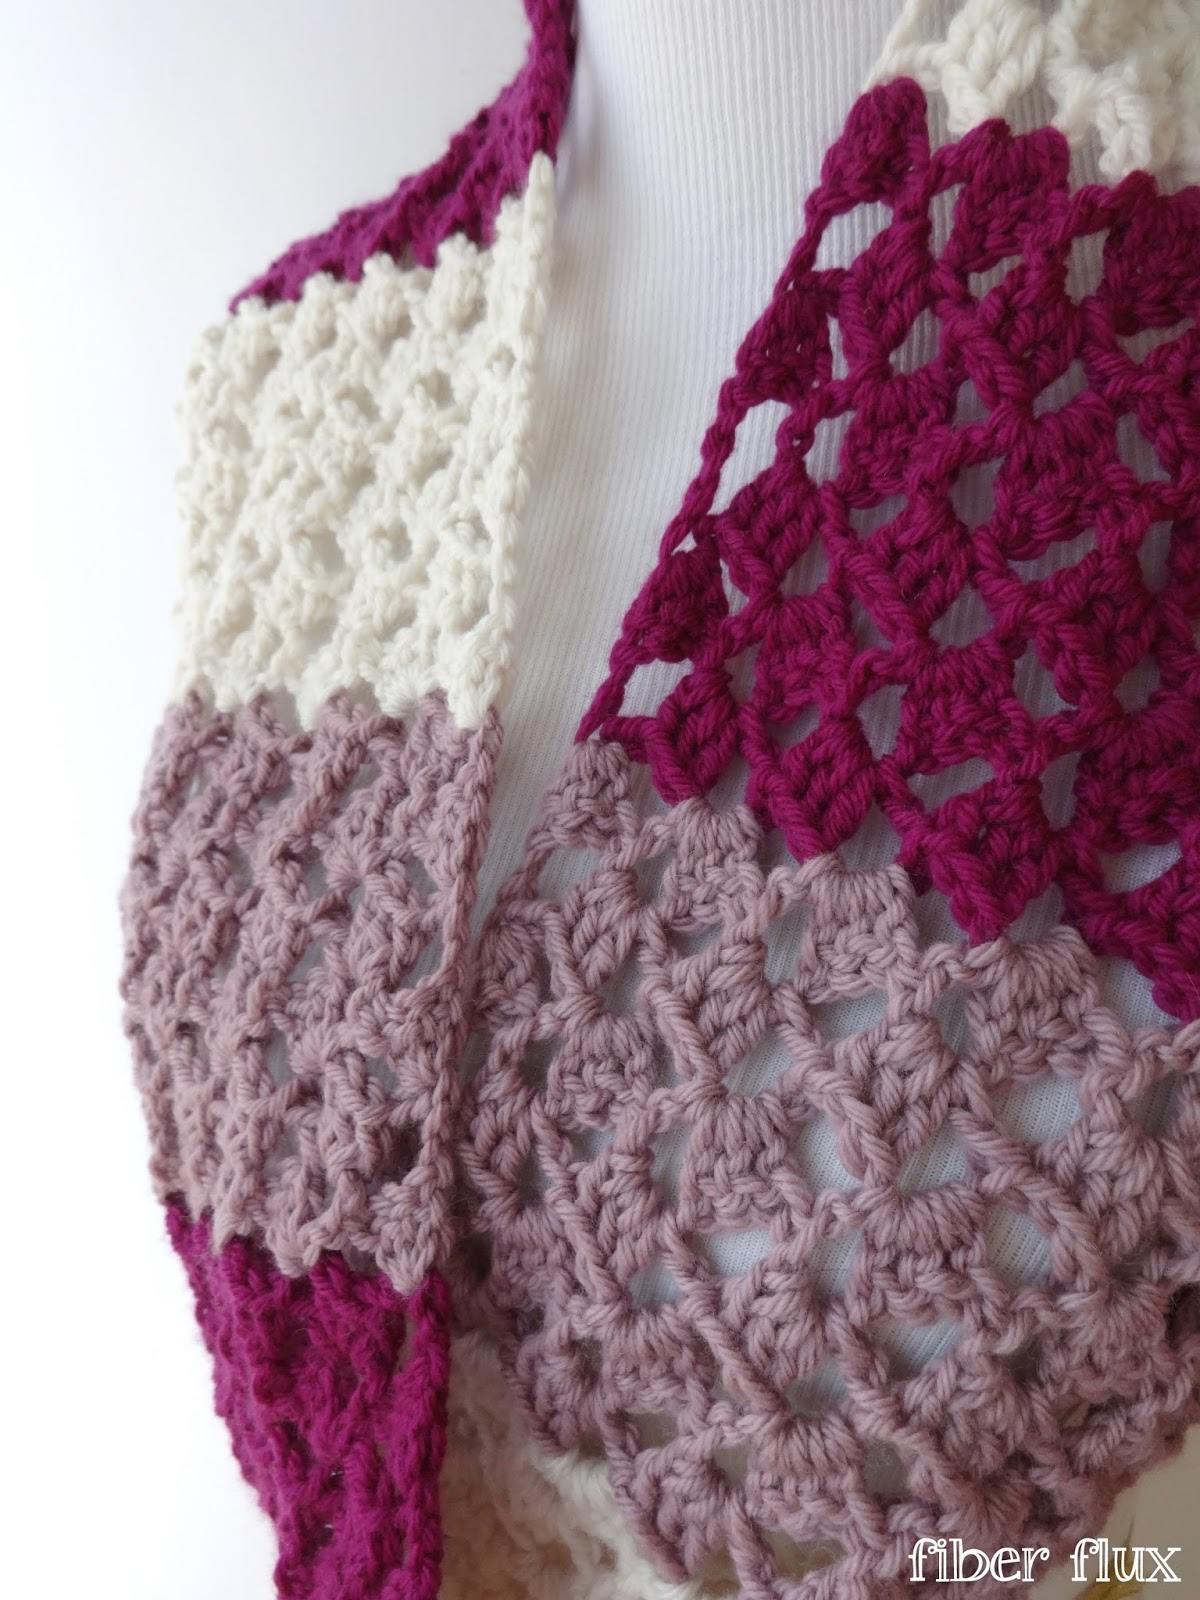 Crochet Pattern For Infinity Scarf With Buttons : Fiber Flux: Free Crochet Pattern...Raspberry Buttercream ...